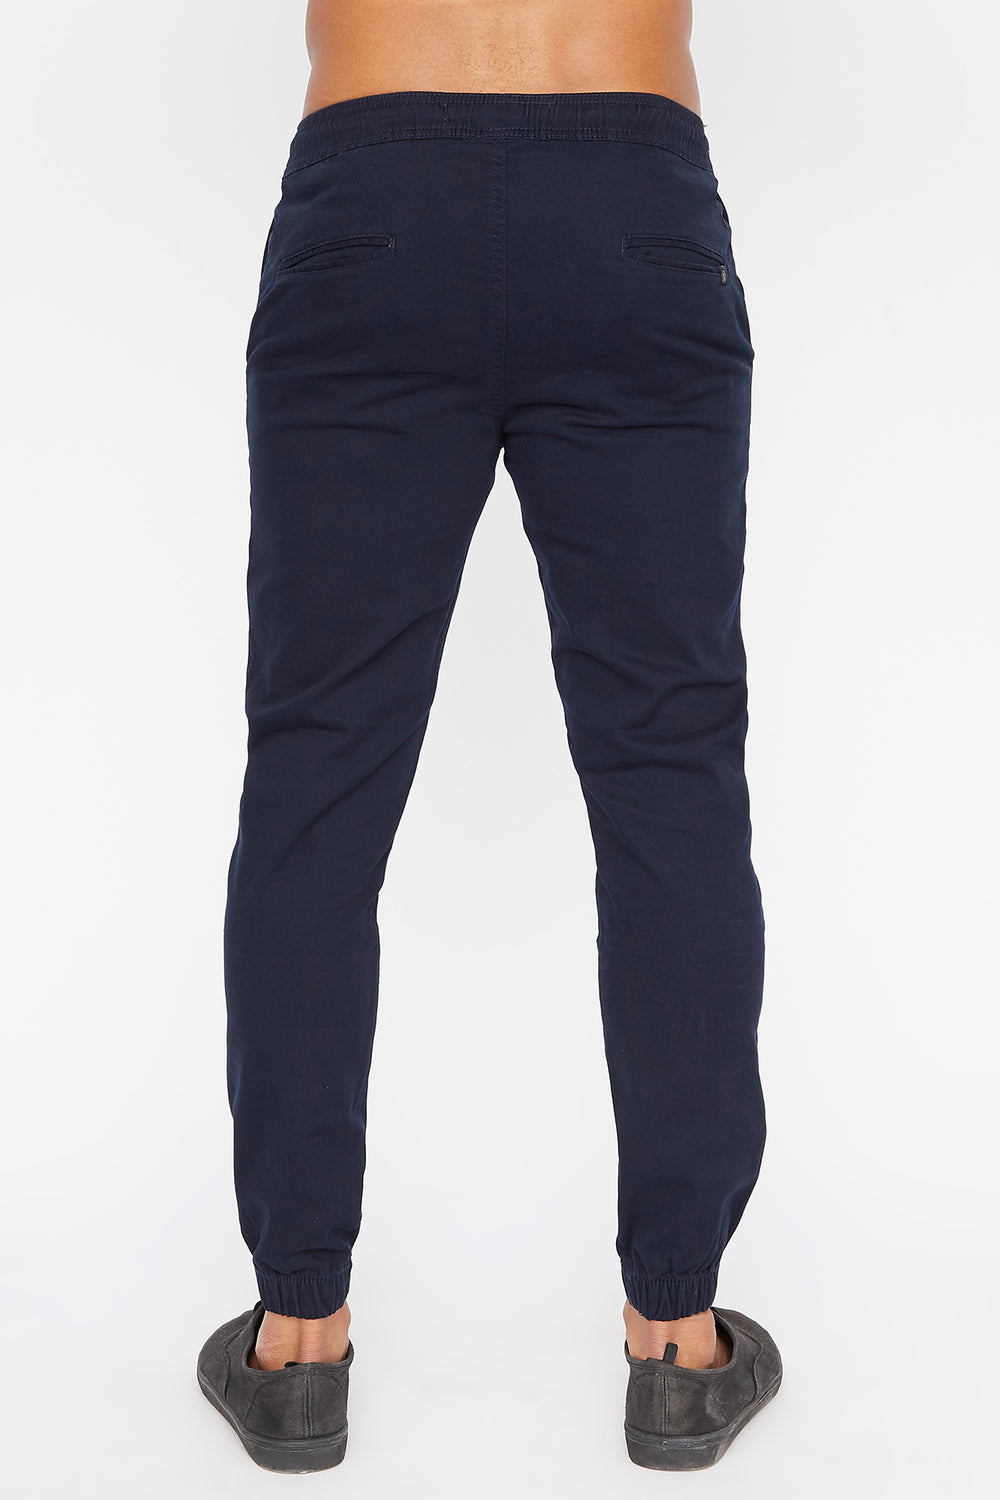 West49 Mens Solid Twill Basic Jogger Navy